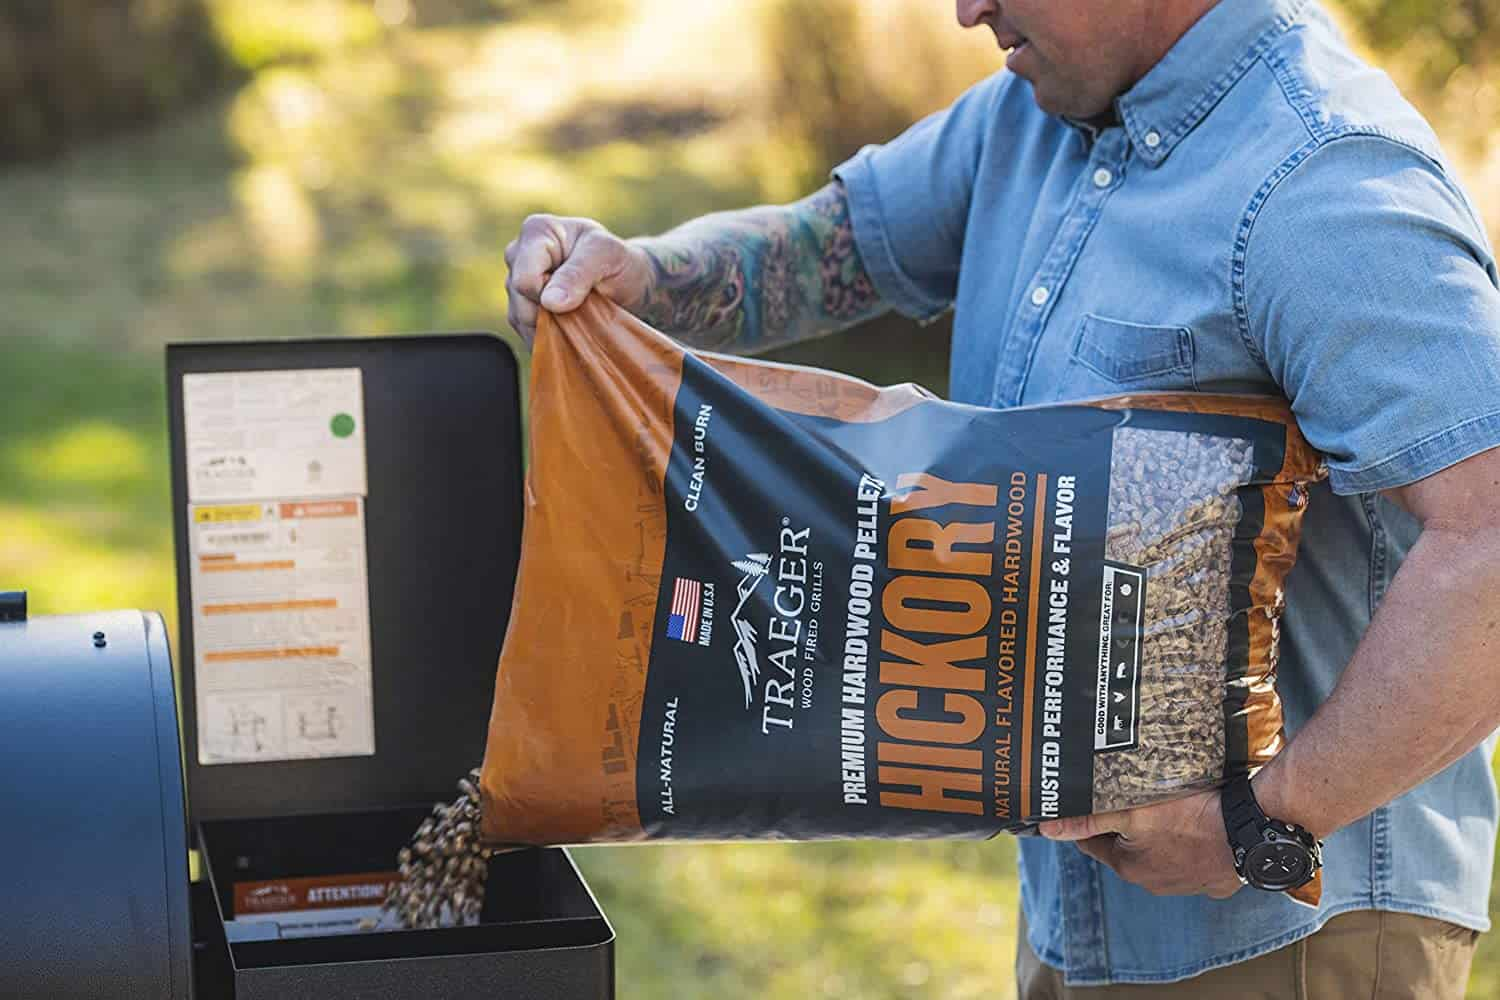 Should you use the same wood pellets brand as your grill?